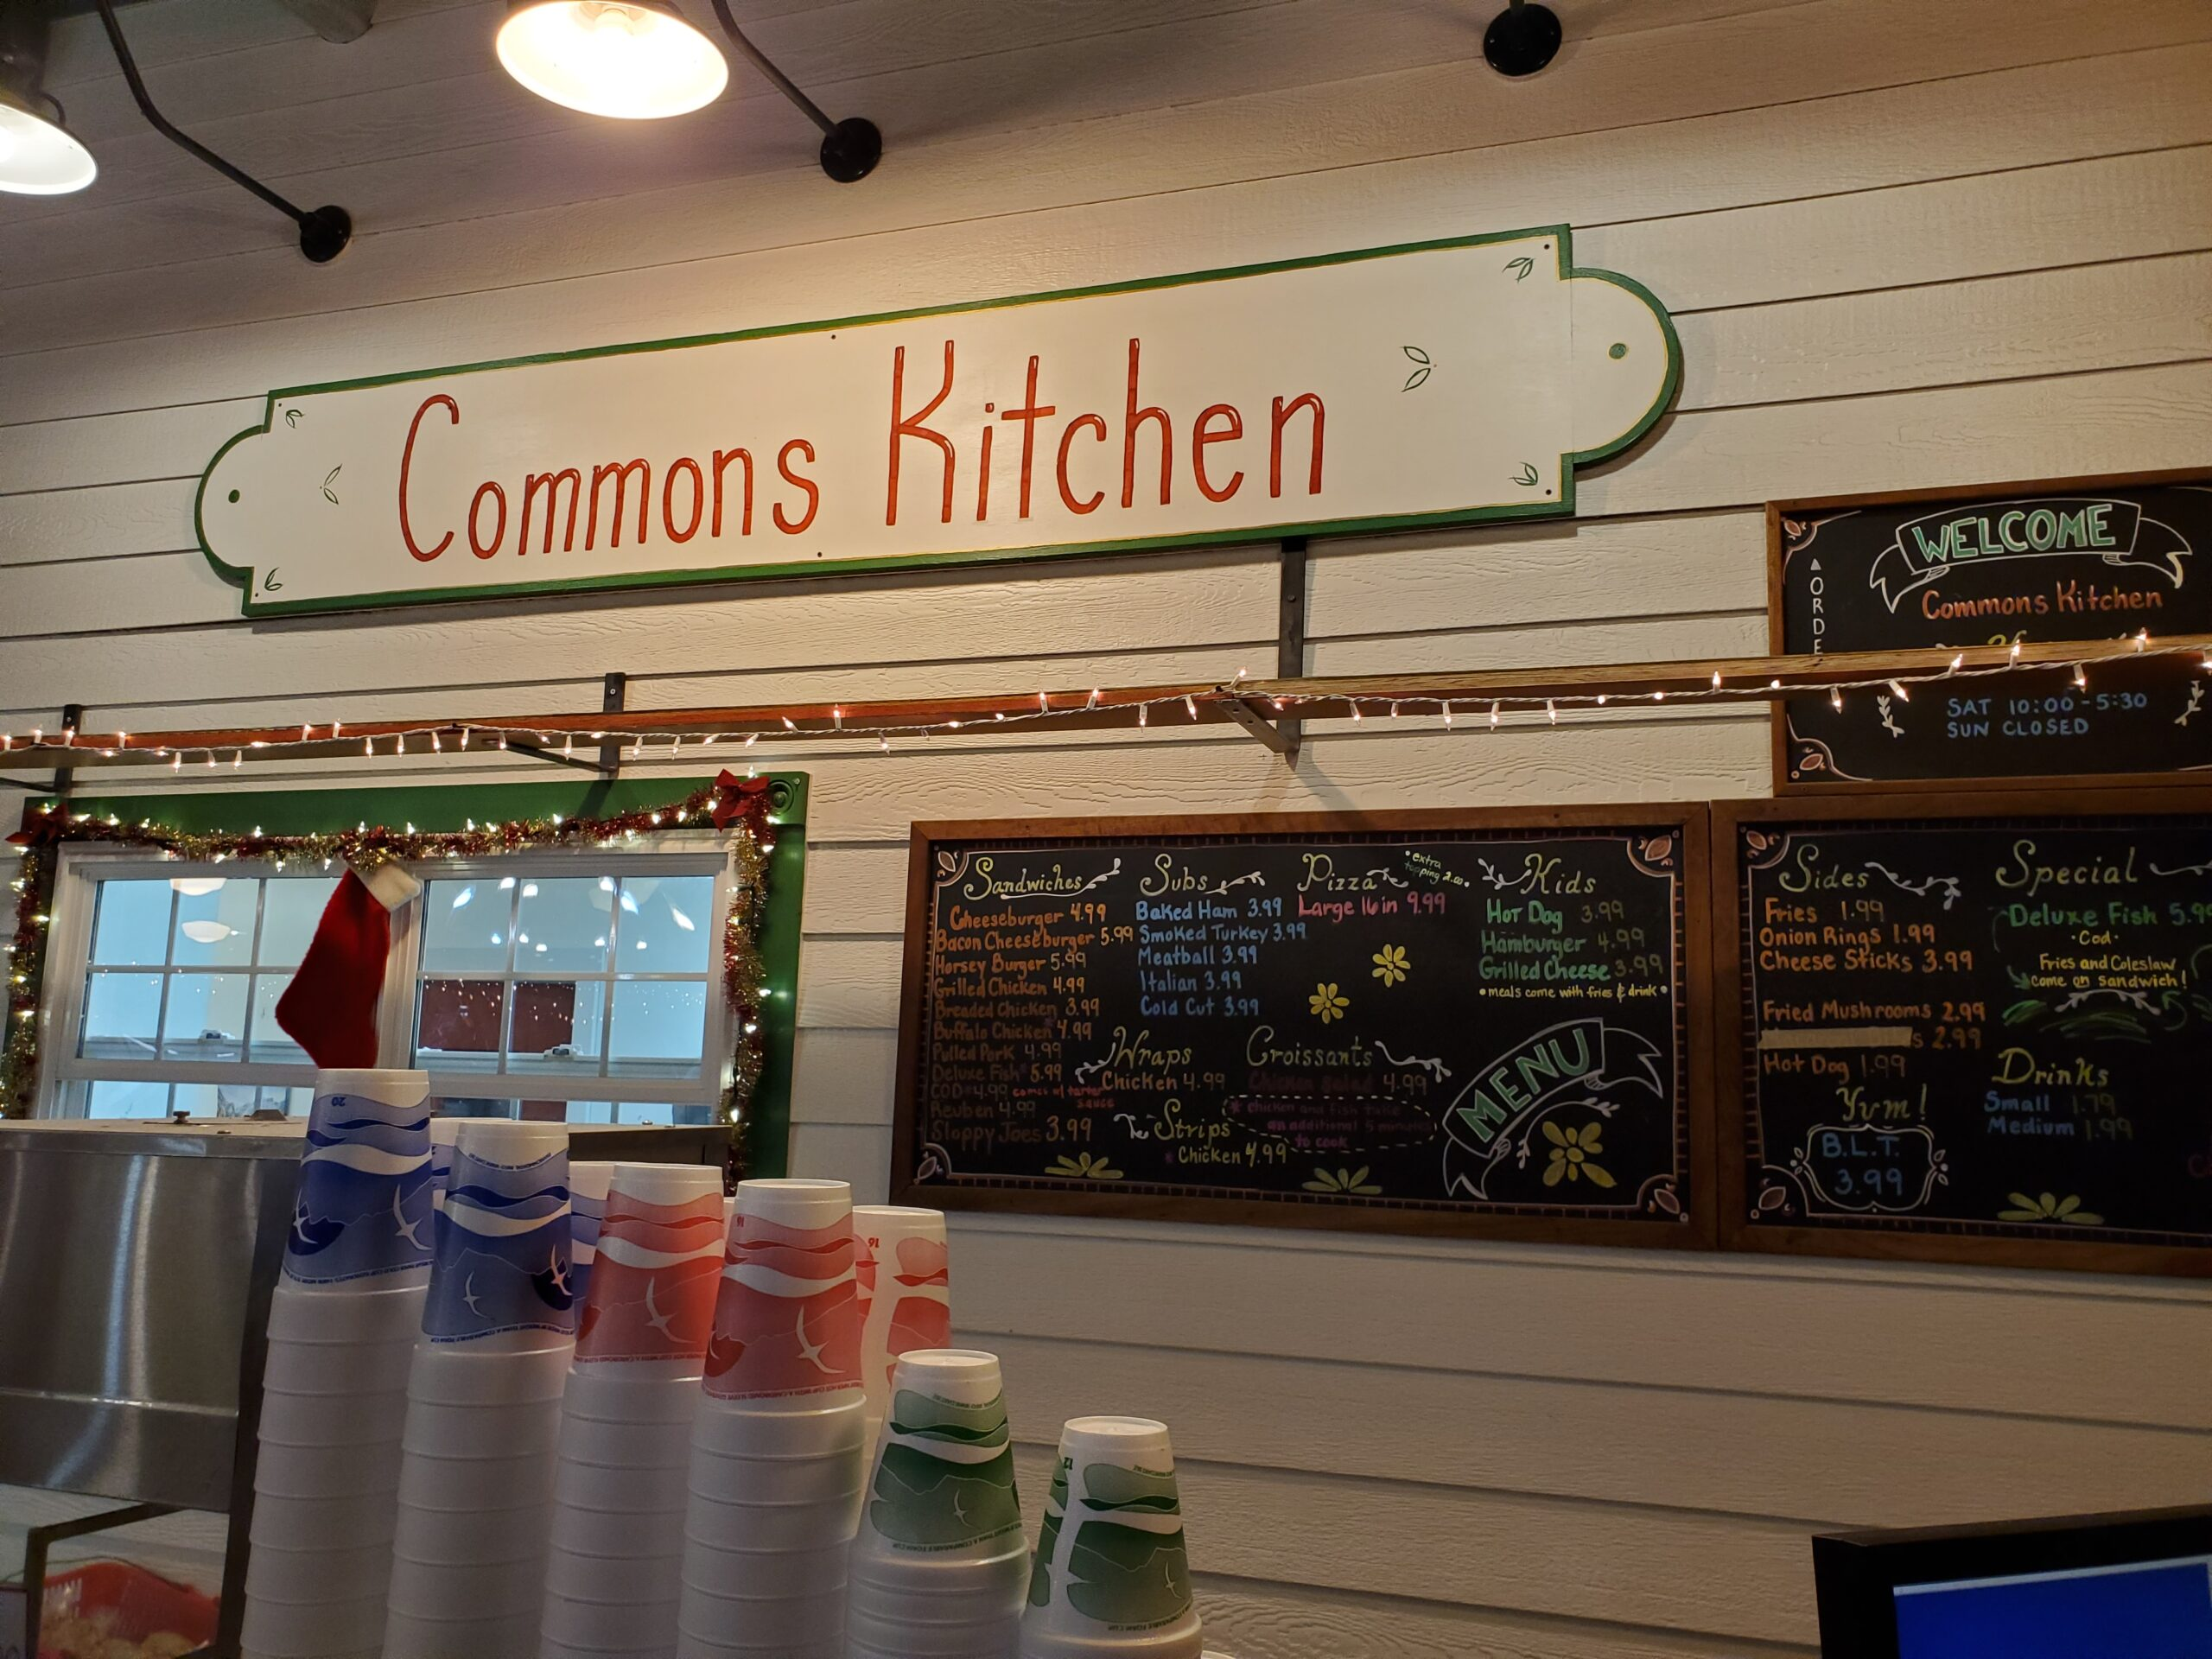 Commons Kitchen